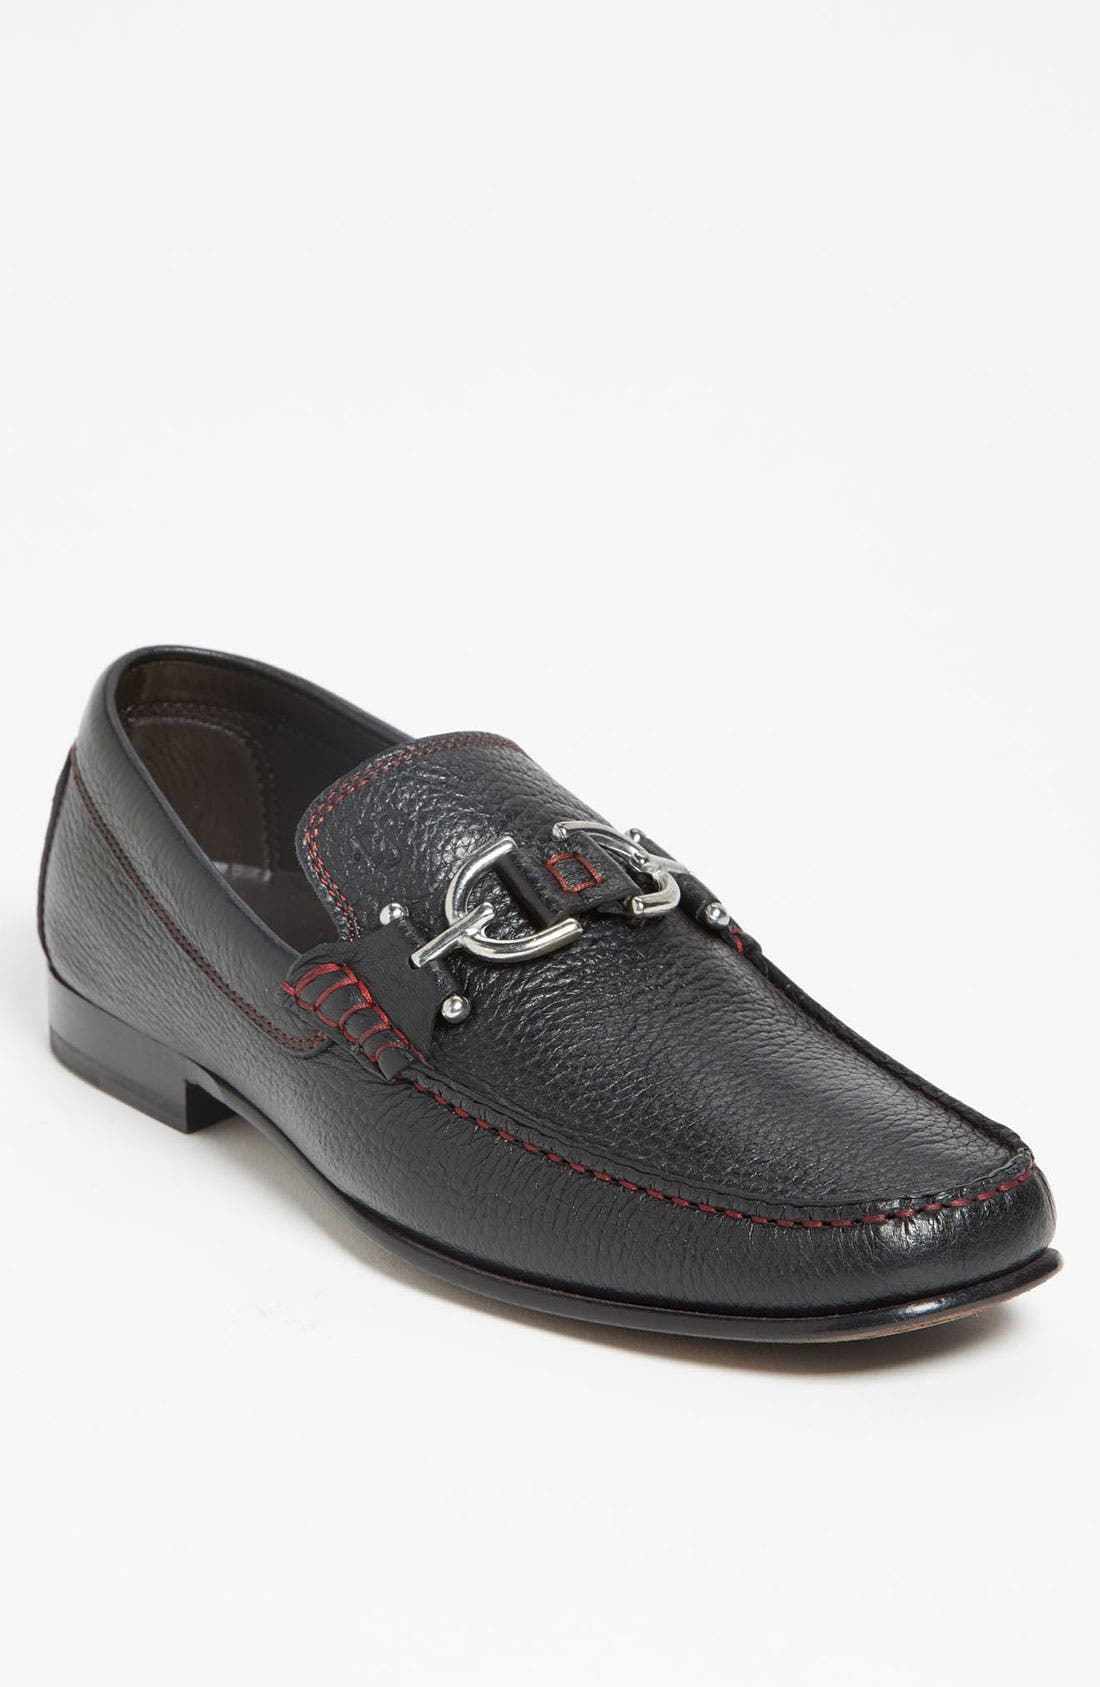 Dacio II Loafer,                         Main,                         color, BLACK/ BLACK LEATHER